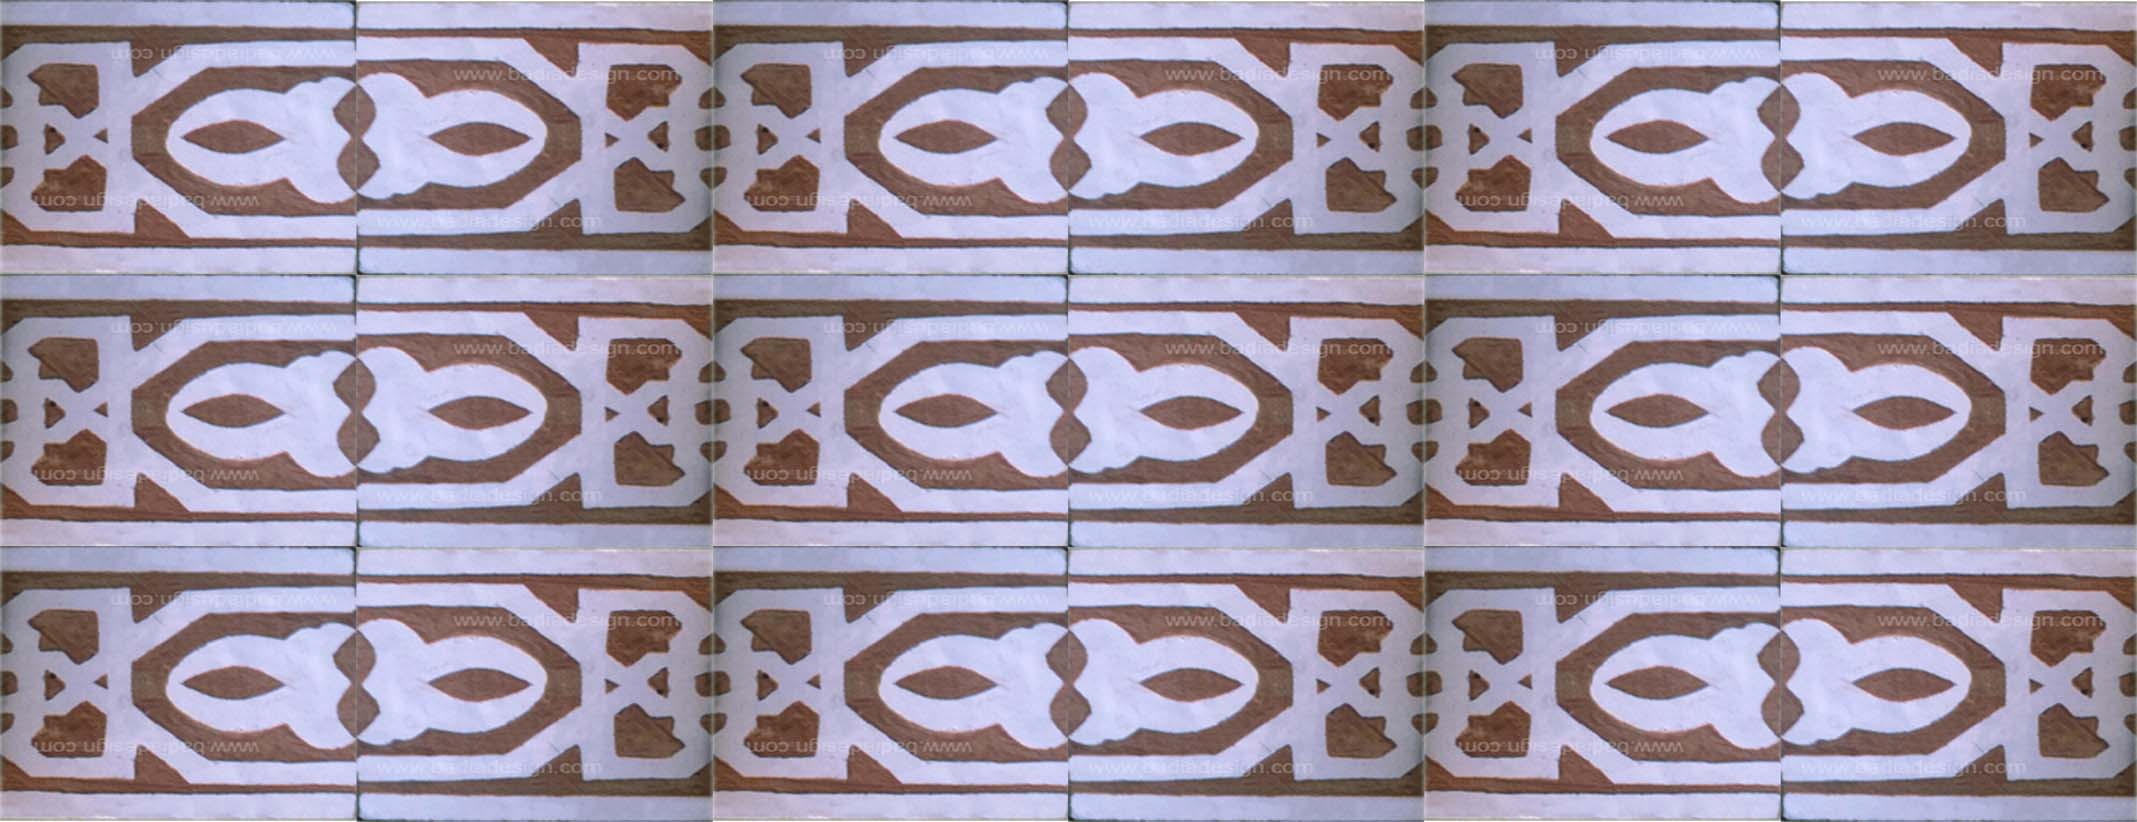 Moroccan Hand Chiseled Tile